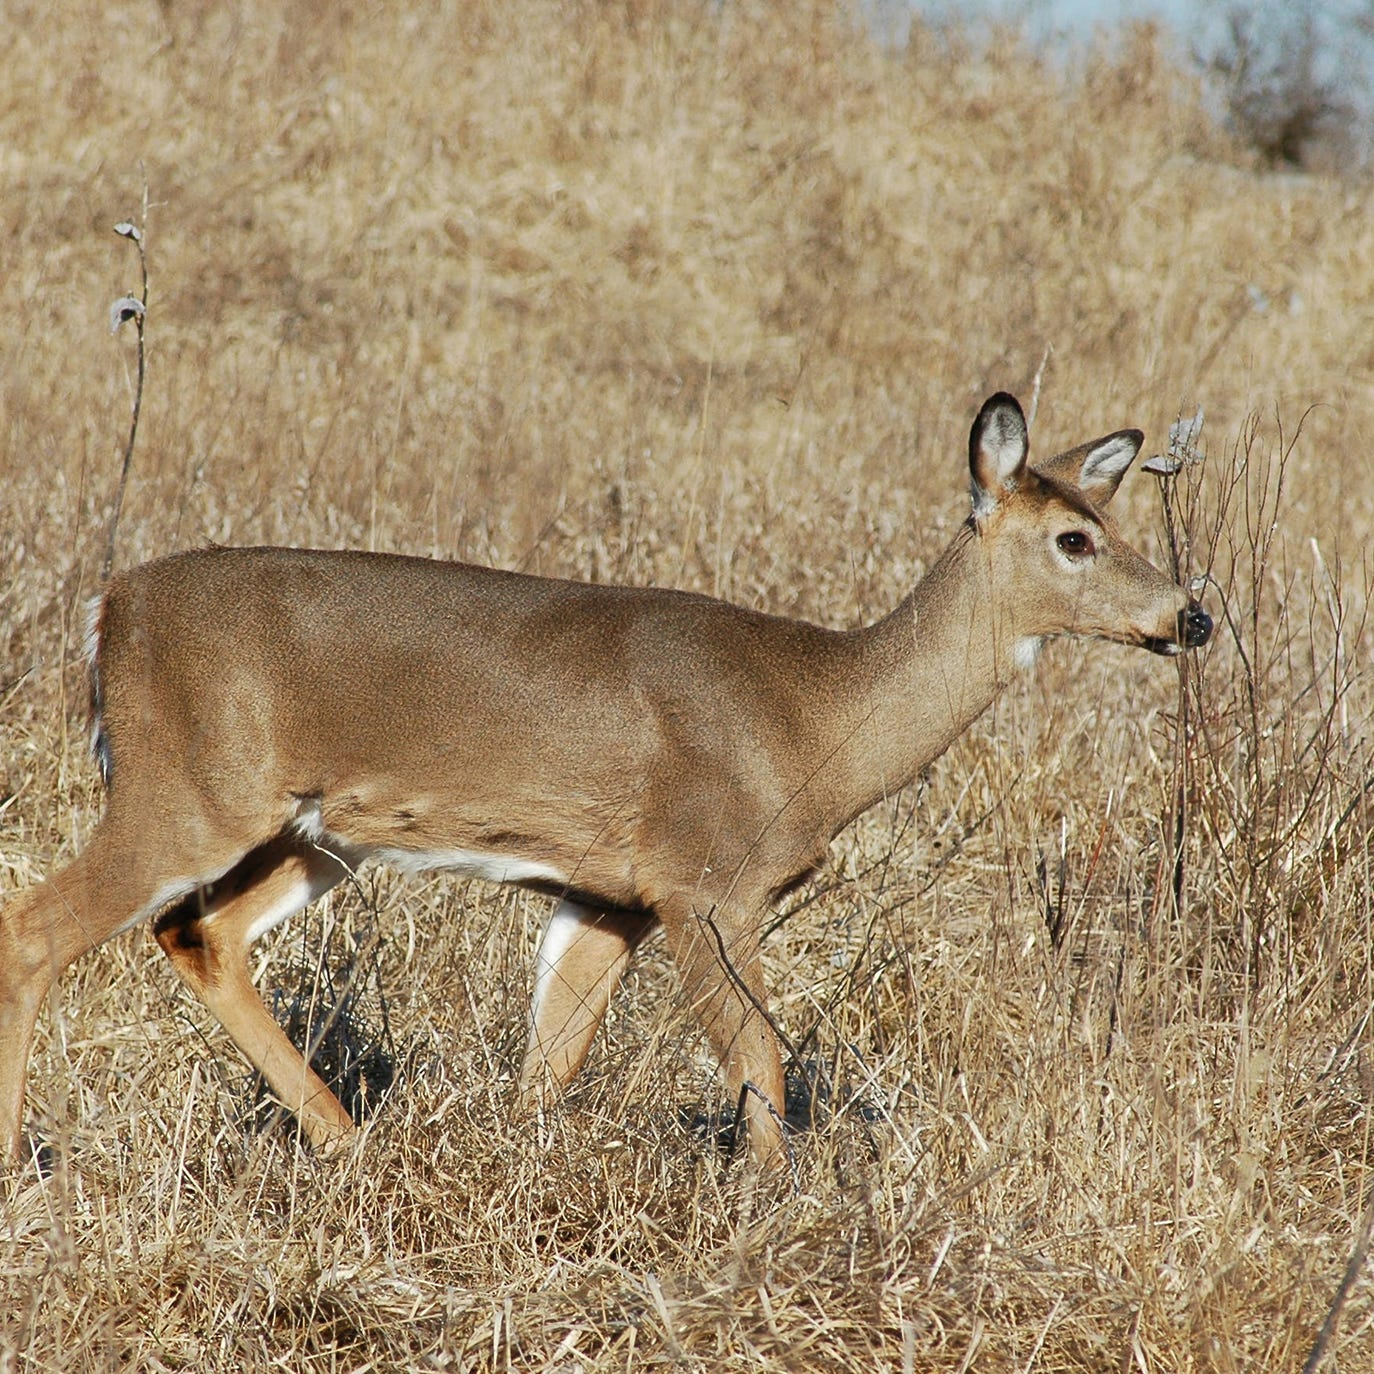 Arkansas hunters stepping up to provide samples for deer disease